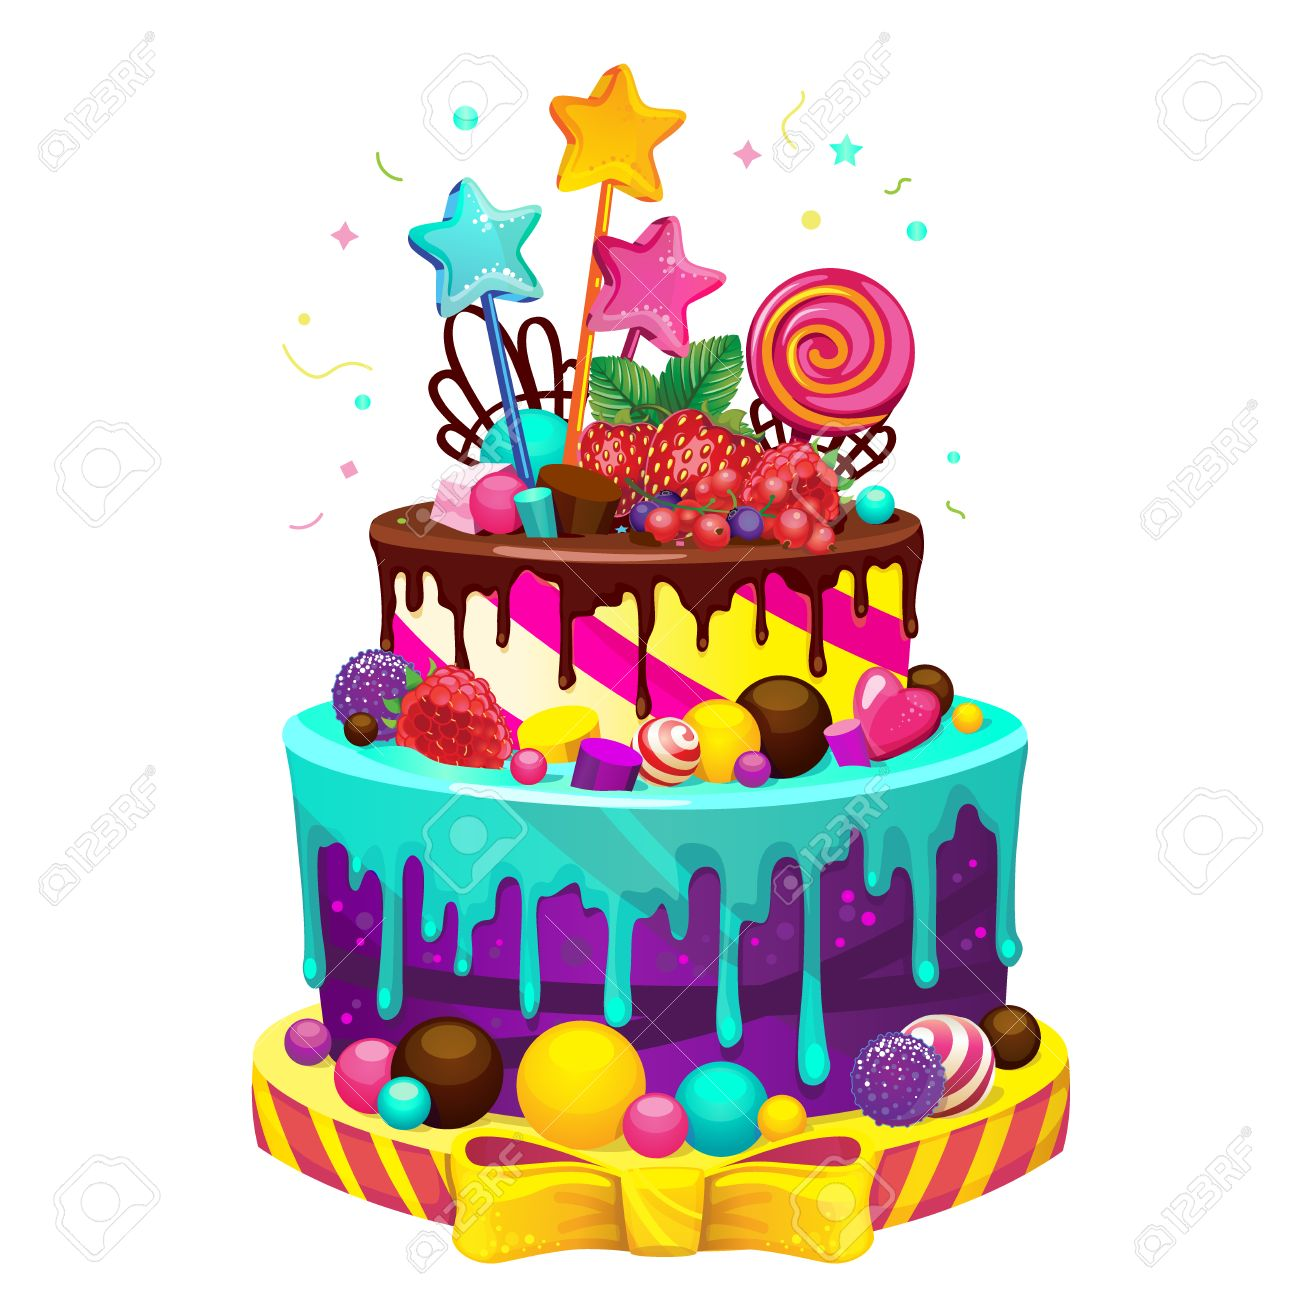 Happy Birthday Cake Bright Vector Isolated Illustration Of A Festive Party Stock